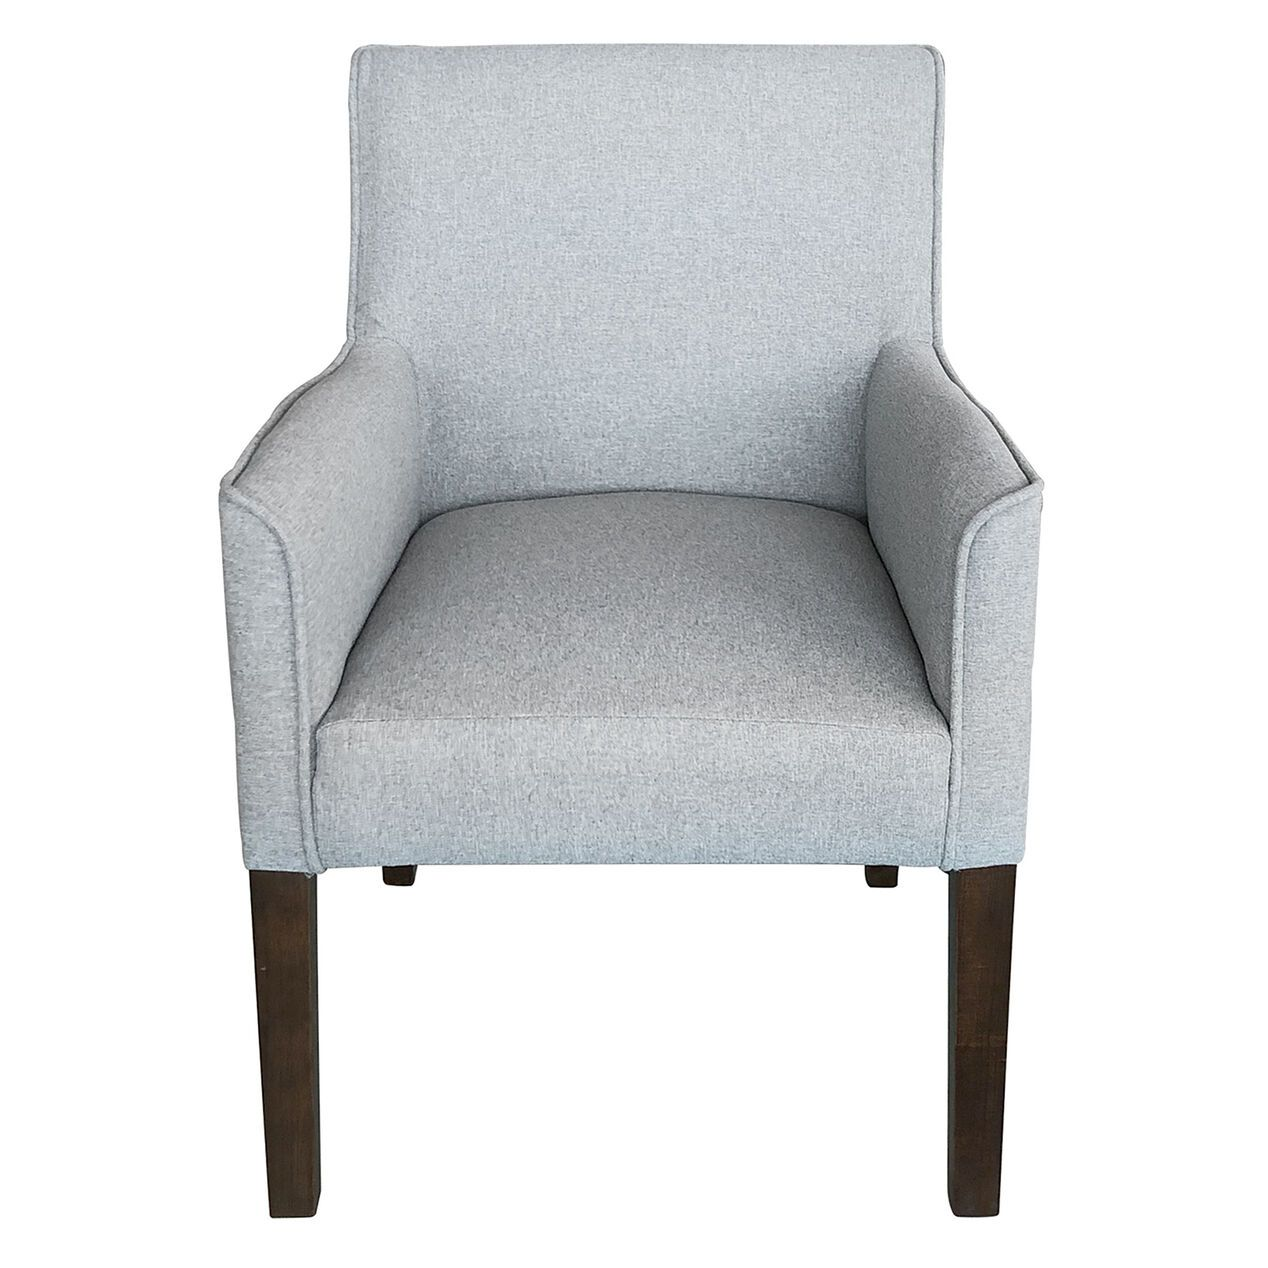 Anise Accent Chair Light Grey In 2020 Accent Chairs Chair